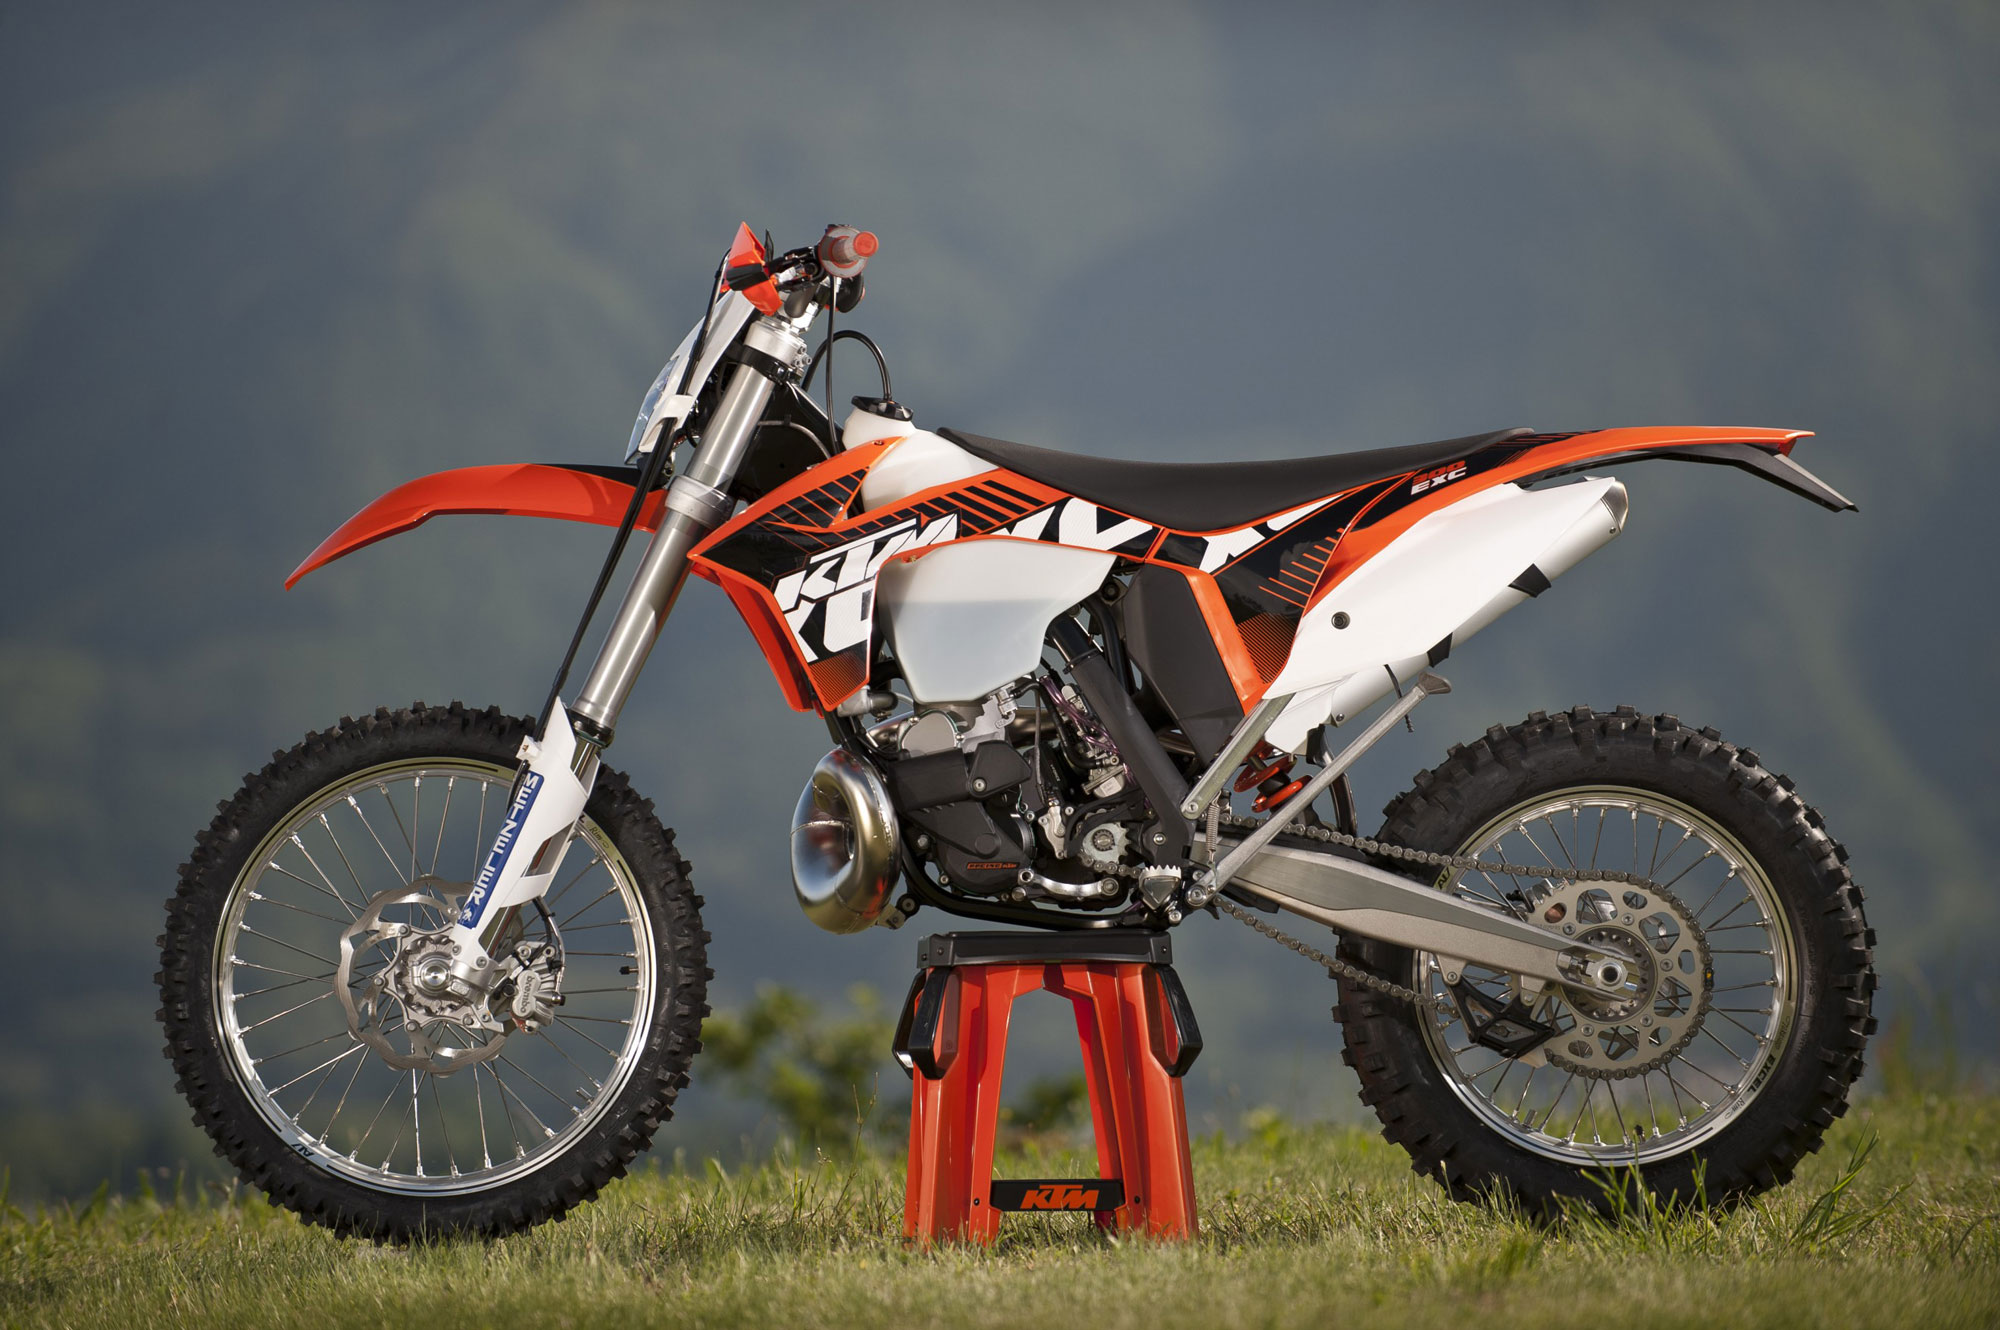 KTM 300 MXC 2002 images #85461